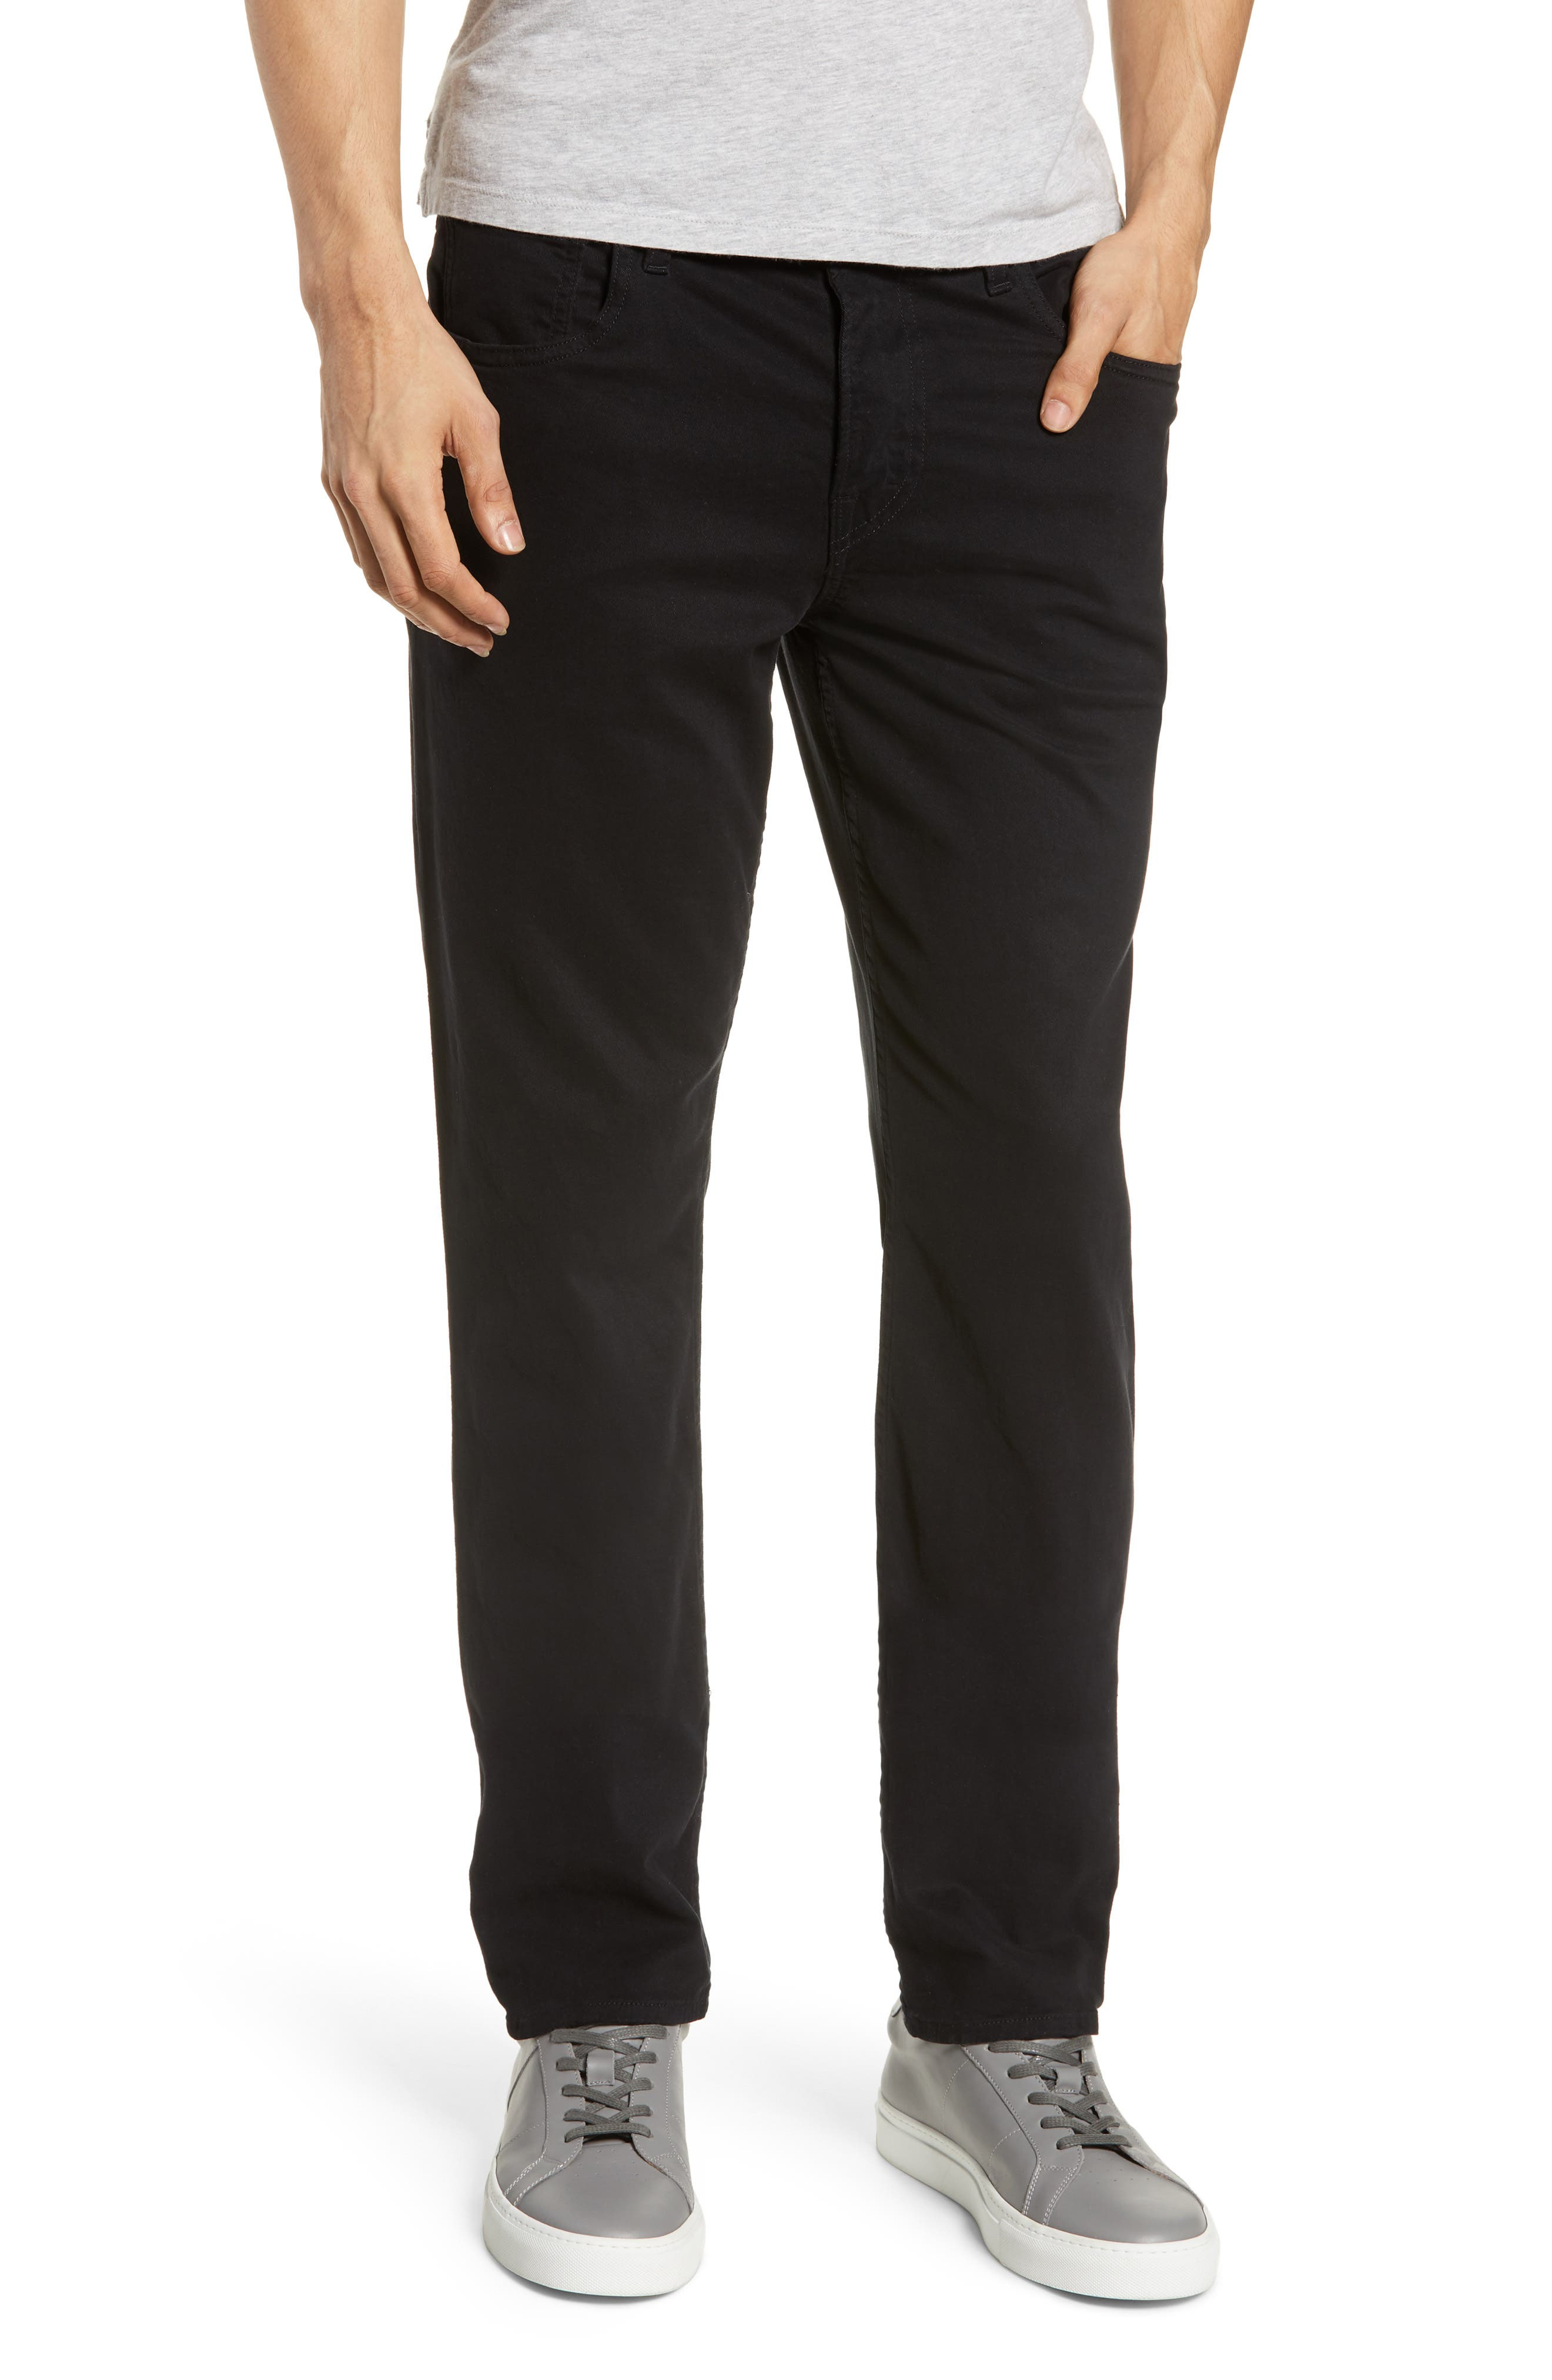 HUDSON JEANS Blake Slim Fit Jeans, Main, color, BLACK